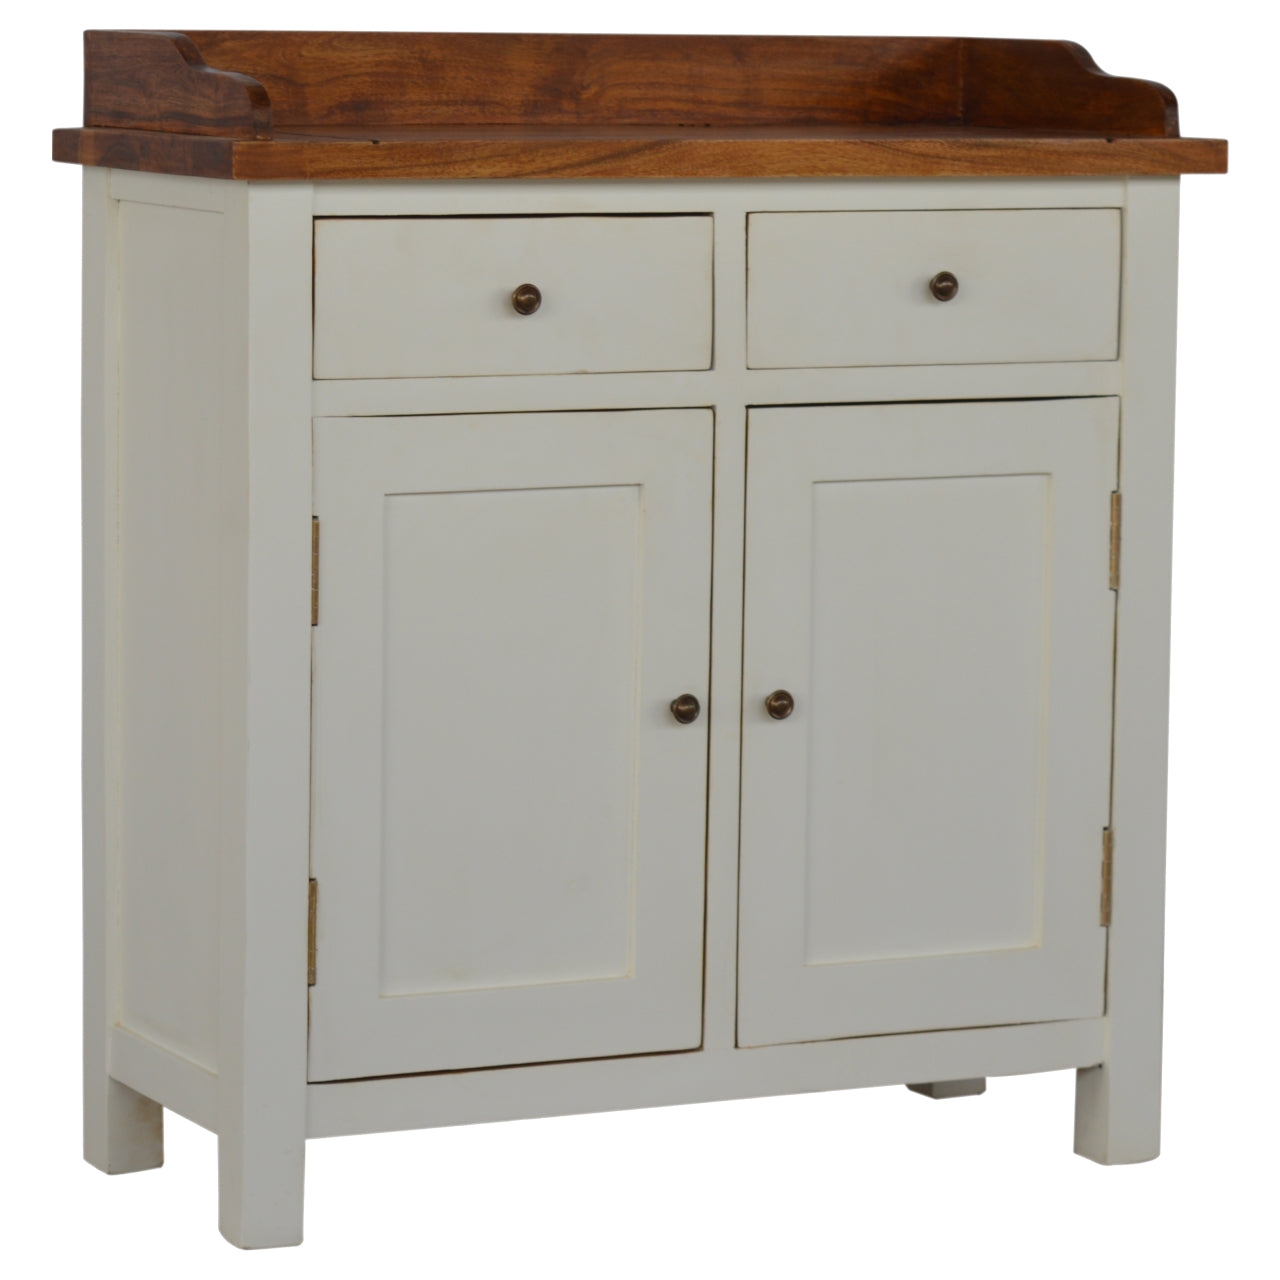 Elizabeth Shabby Chic Kitchen Unit